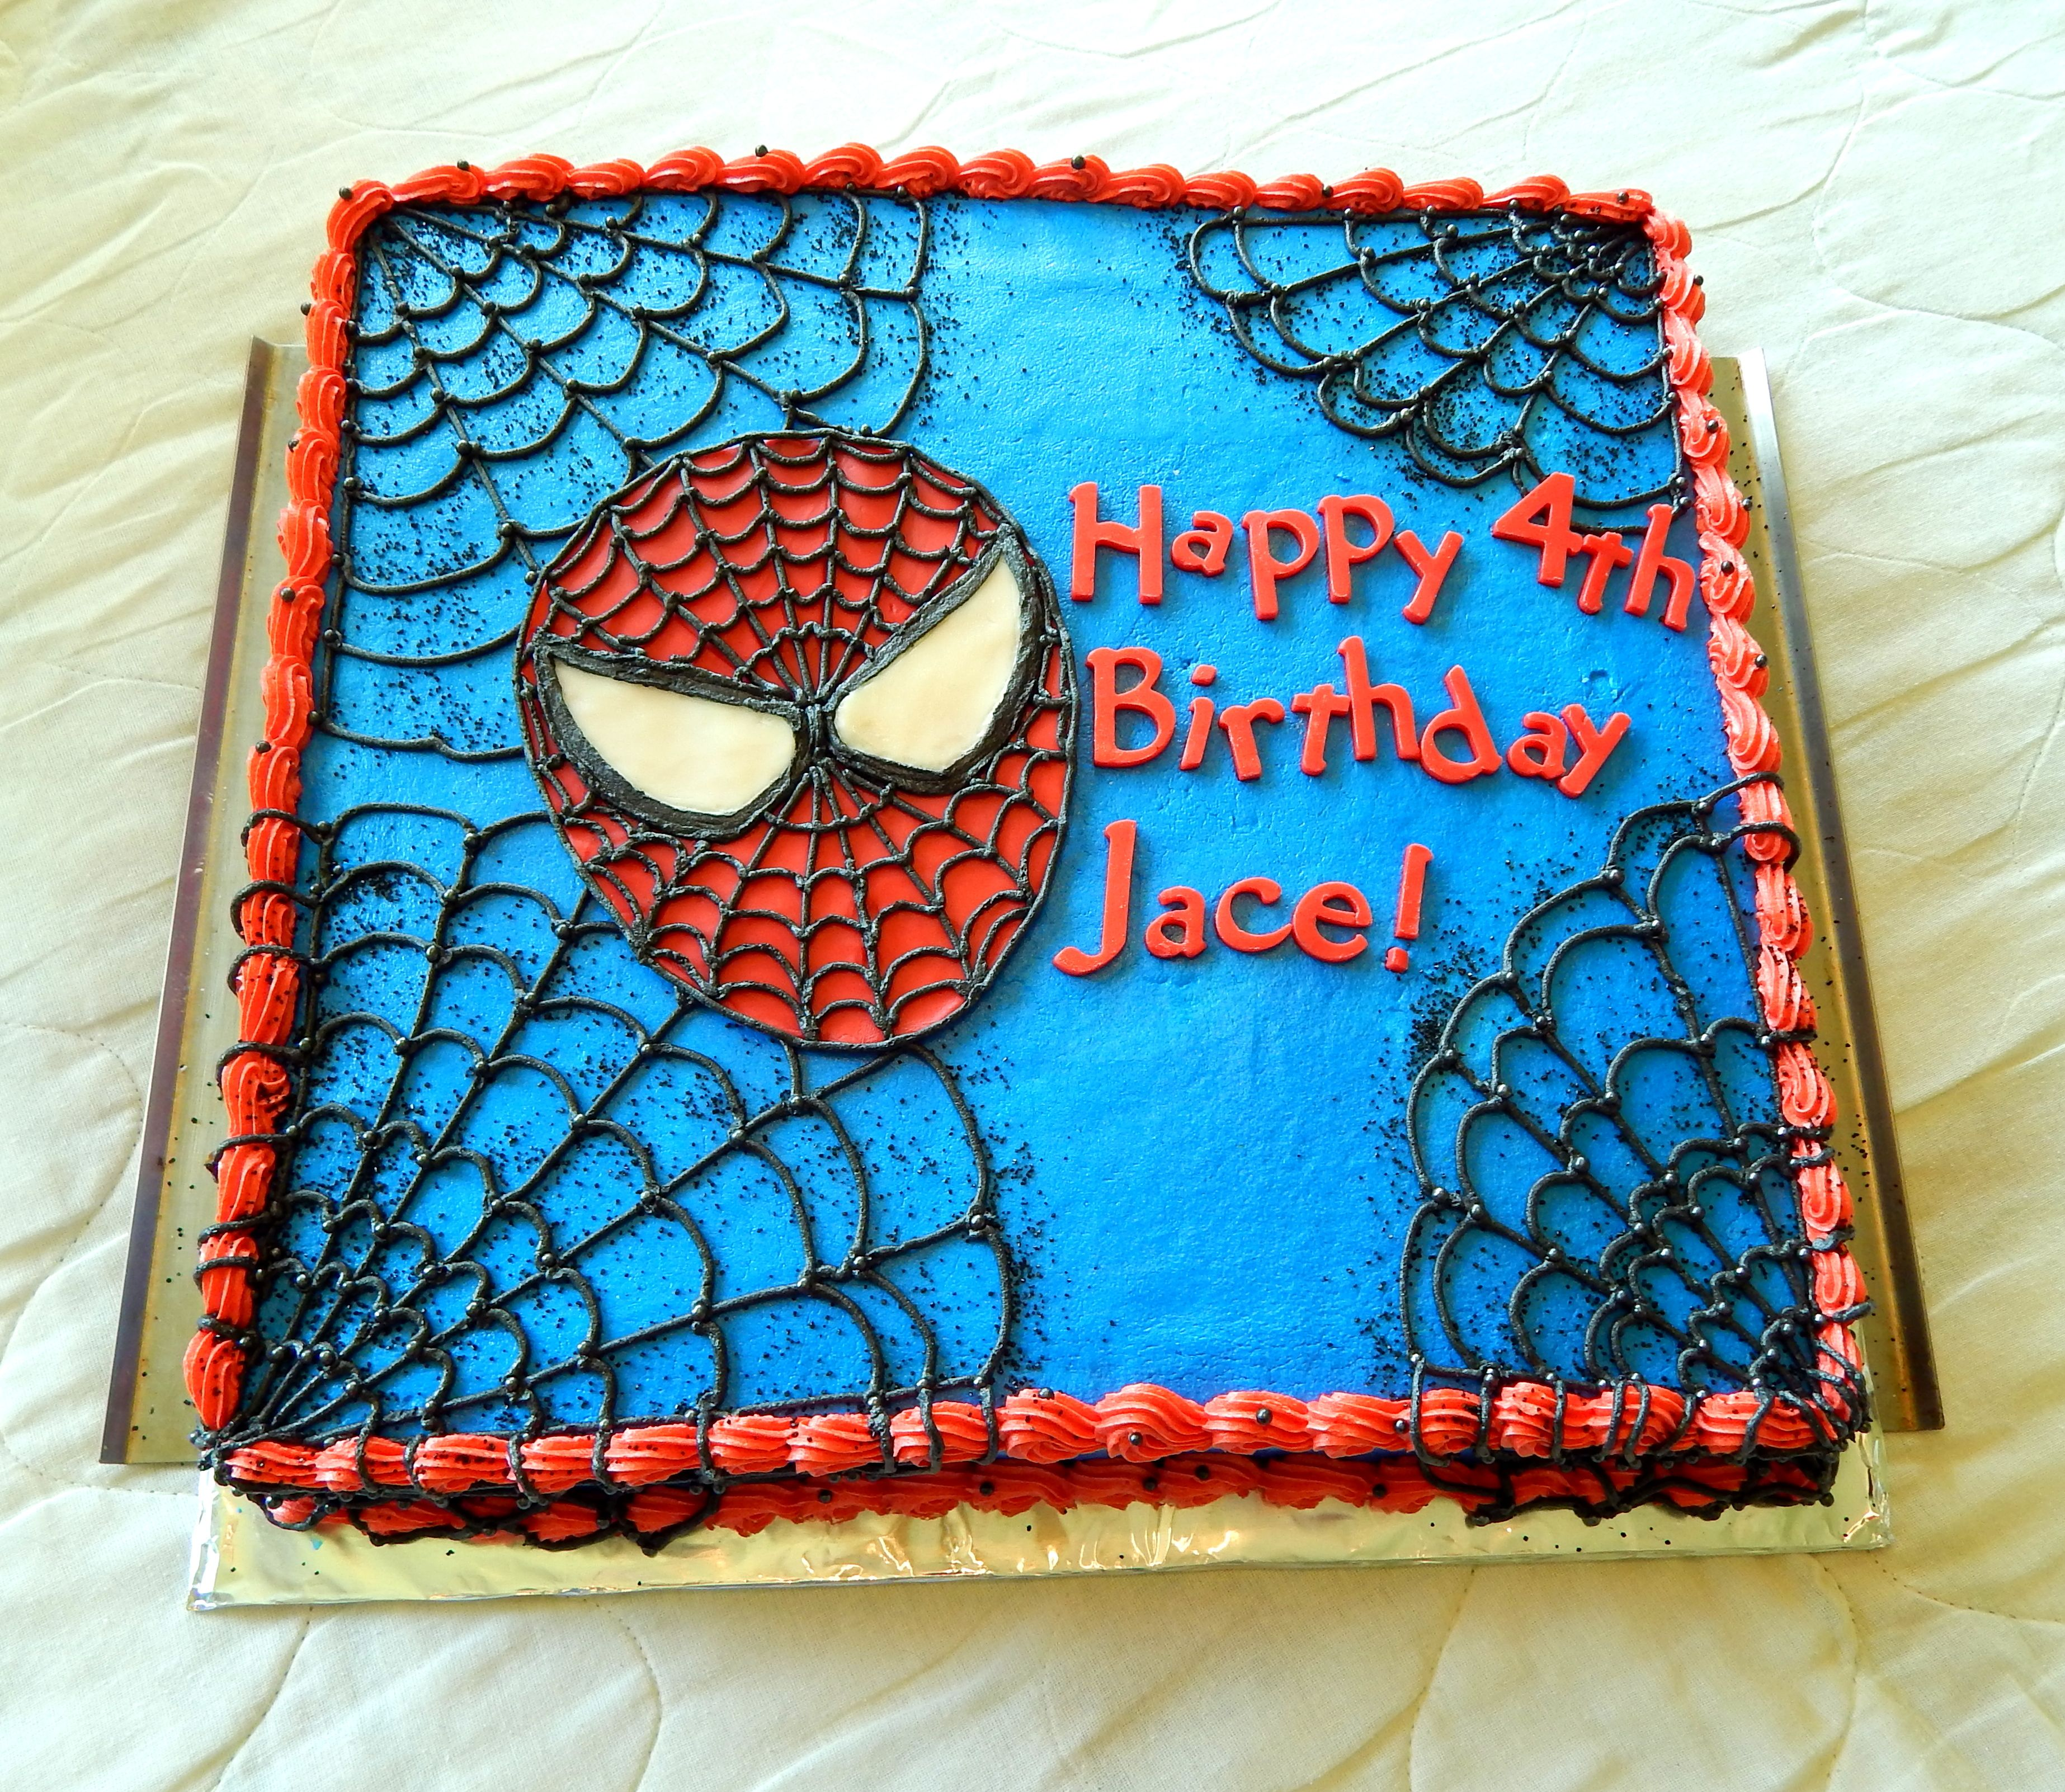 Pin by Sheila Bolton on Baking | Spiderman birthday cake ...